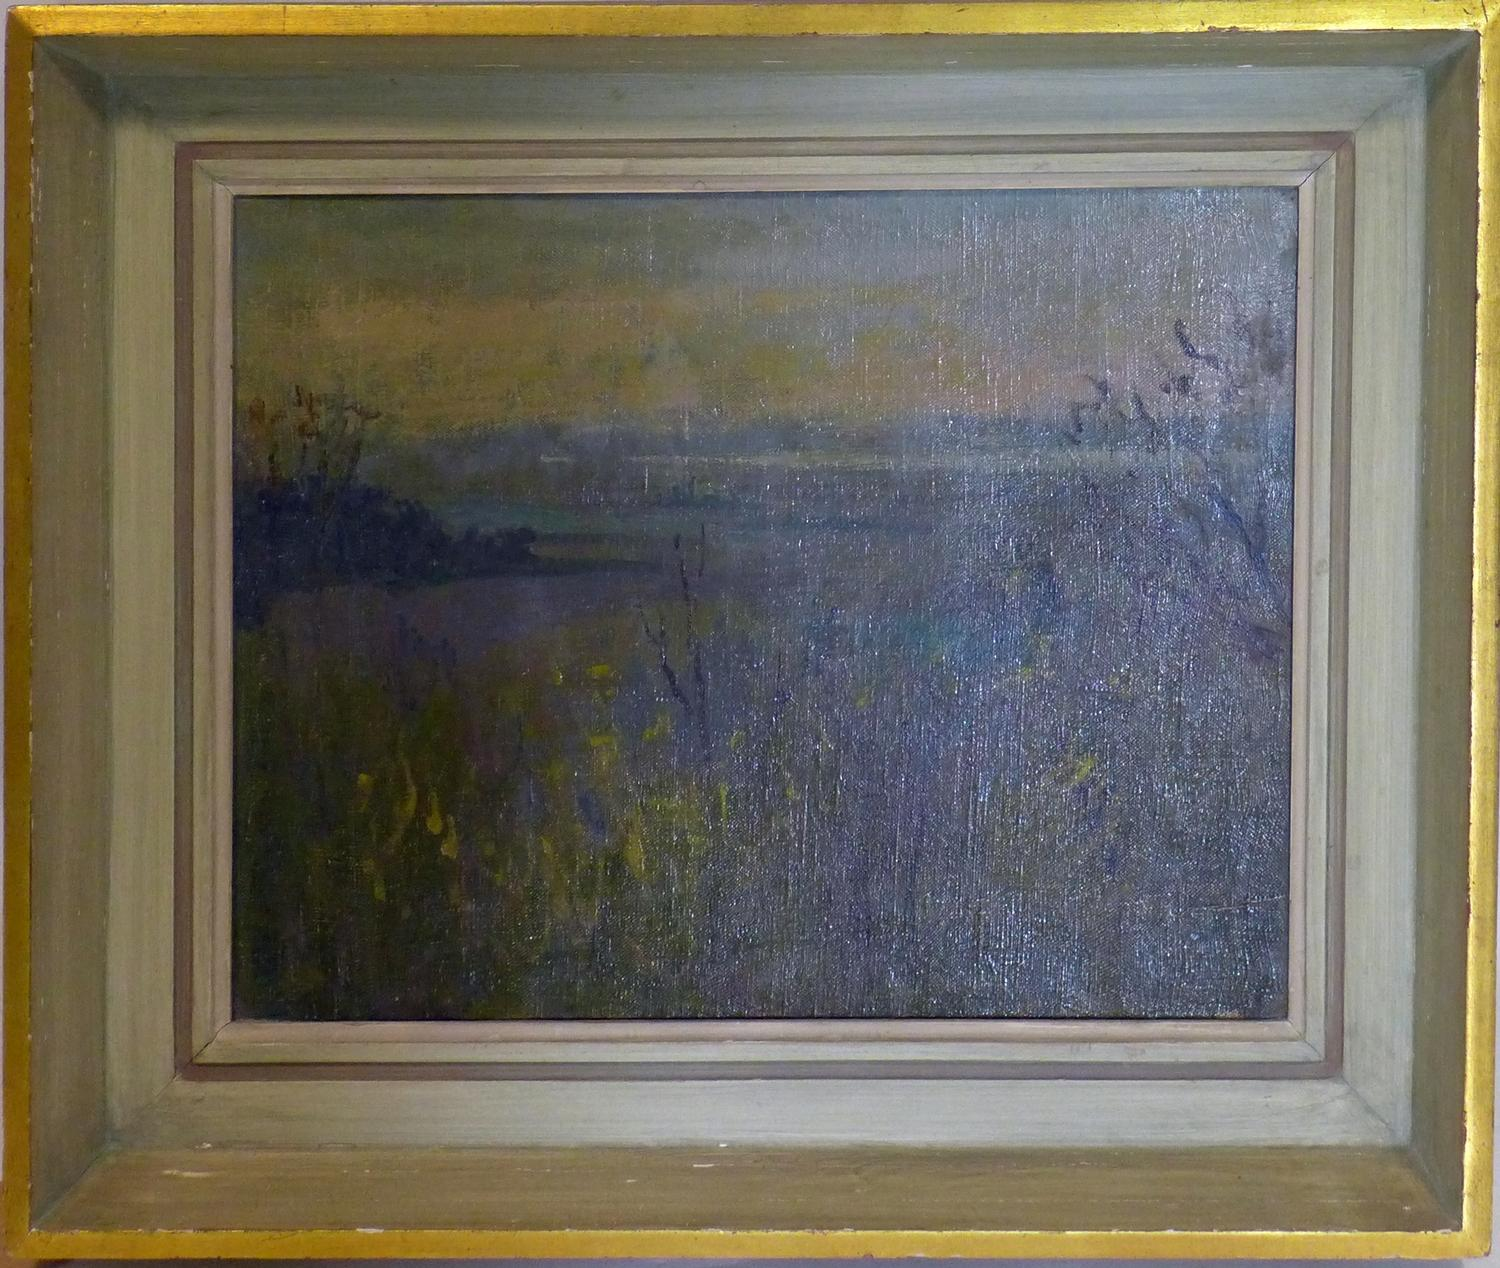 Lot 10 - Margaret Thomas RA, NEAC (1916-2016) A framed abstract oil on canvas of Thames marshland, 34.5 x